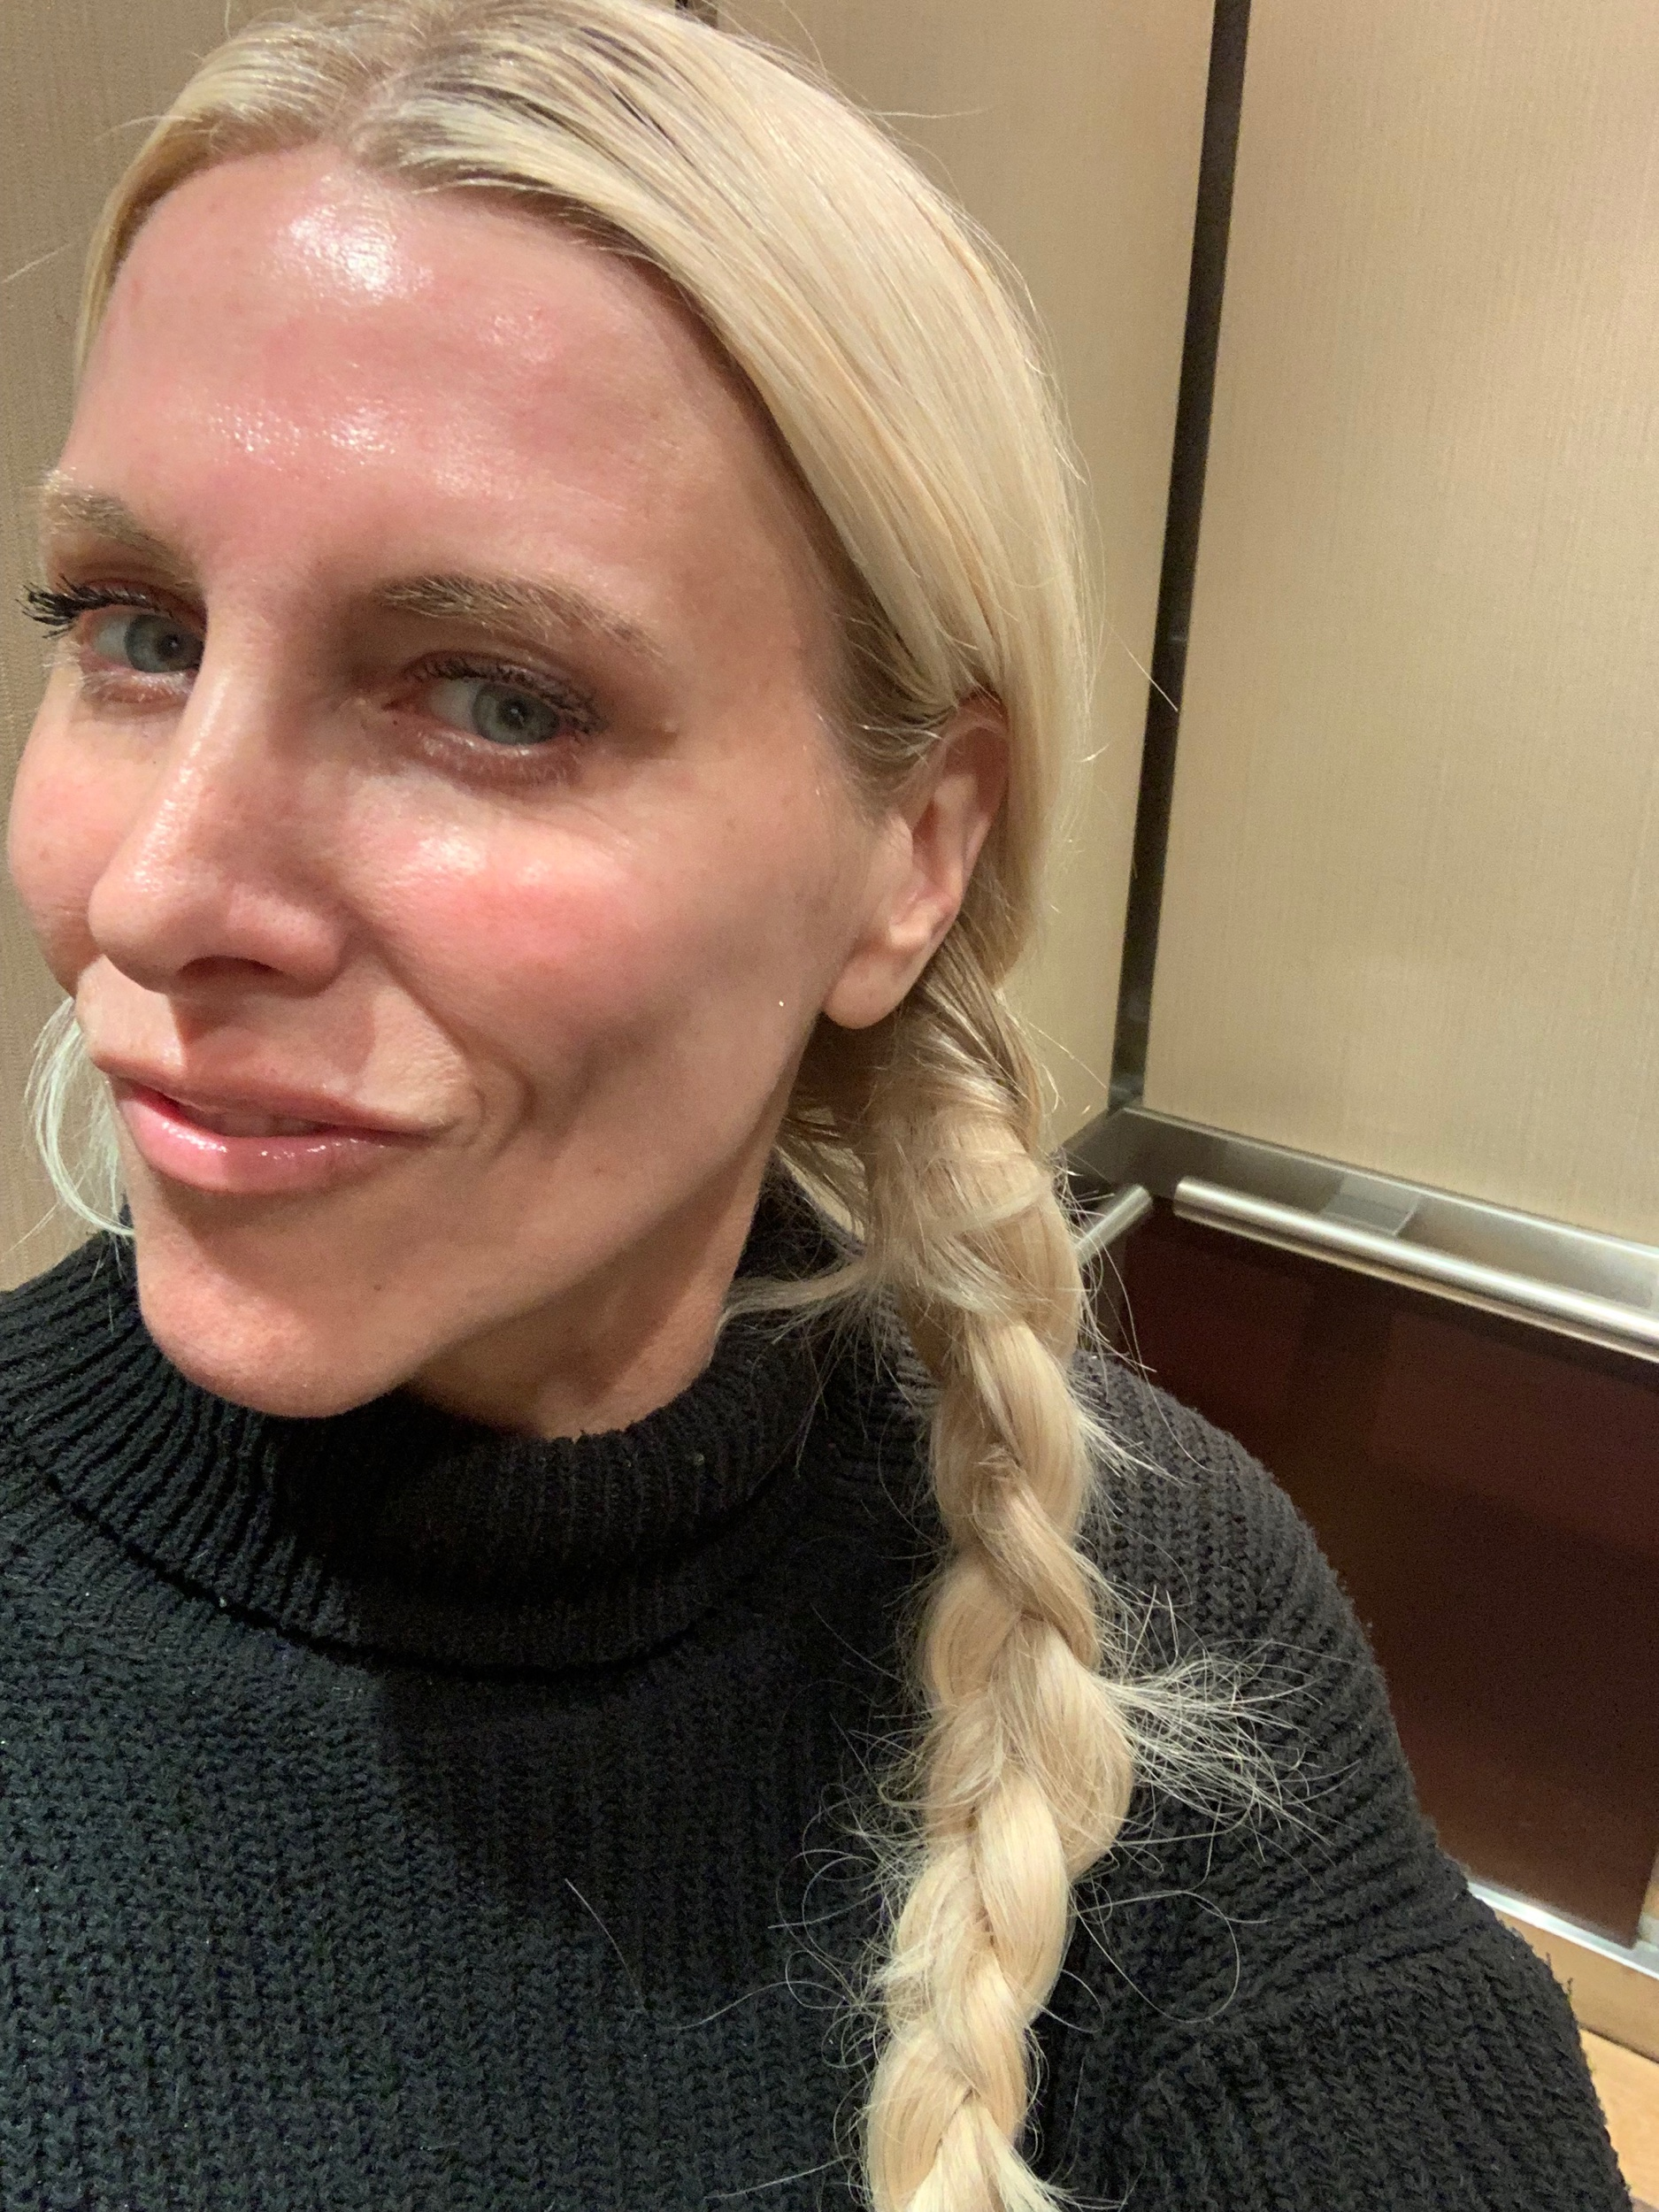 Okay, this is me in the elevator, immediately after all 3 lasers, no makeup, no filter, and only aloe-vera on my face because it feels like a slight sunburn. I was pink but only slightly and within a few hours, the hotness on my face went away!!